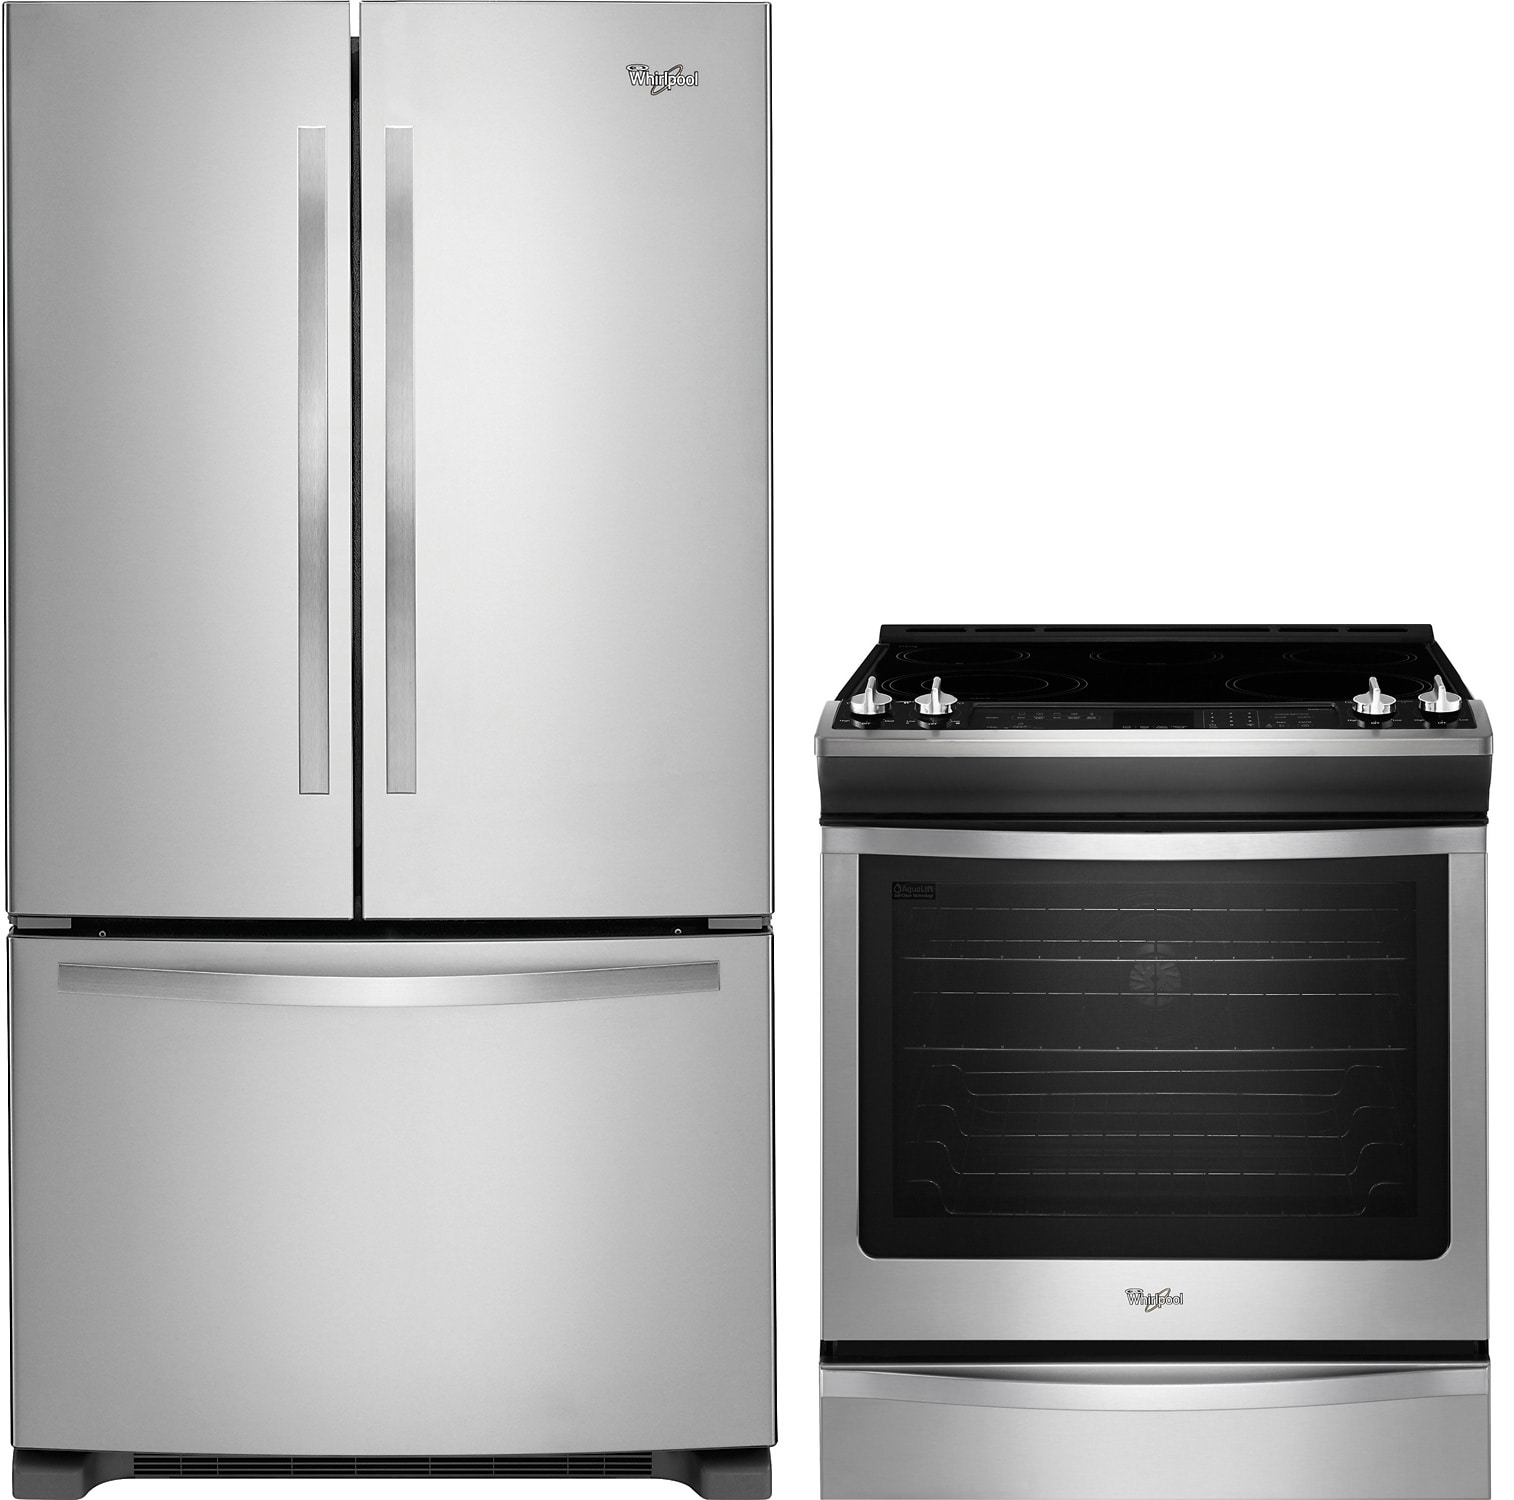 Refrigerators and Freezers - Whirlpool® 22 Cu. Ft. Fridge and 6.2 Cu. Ft. Electric Range Package – Stainless Steel